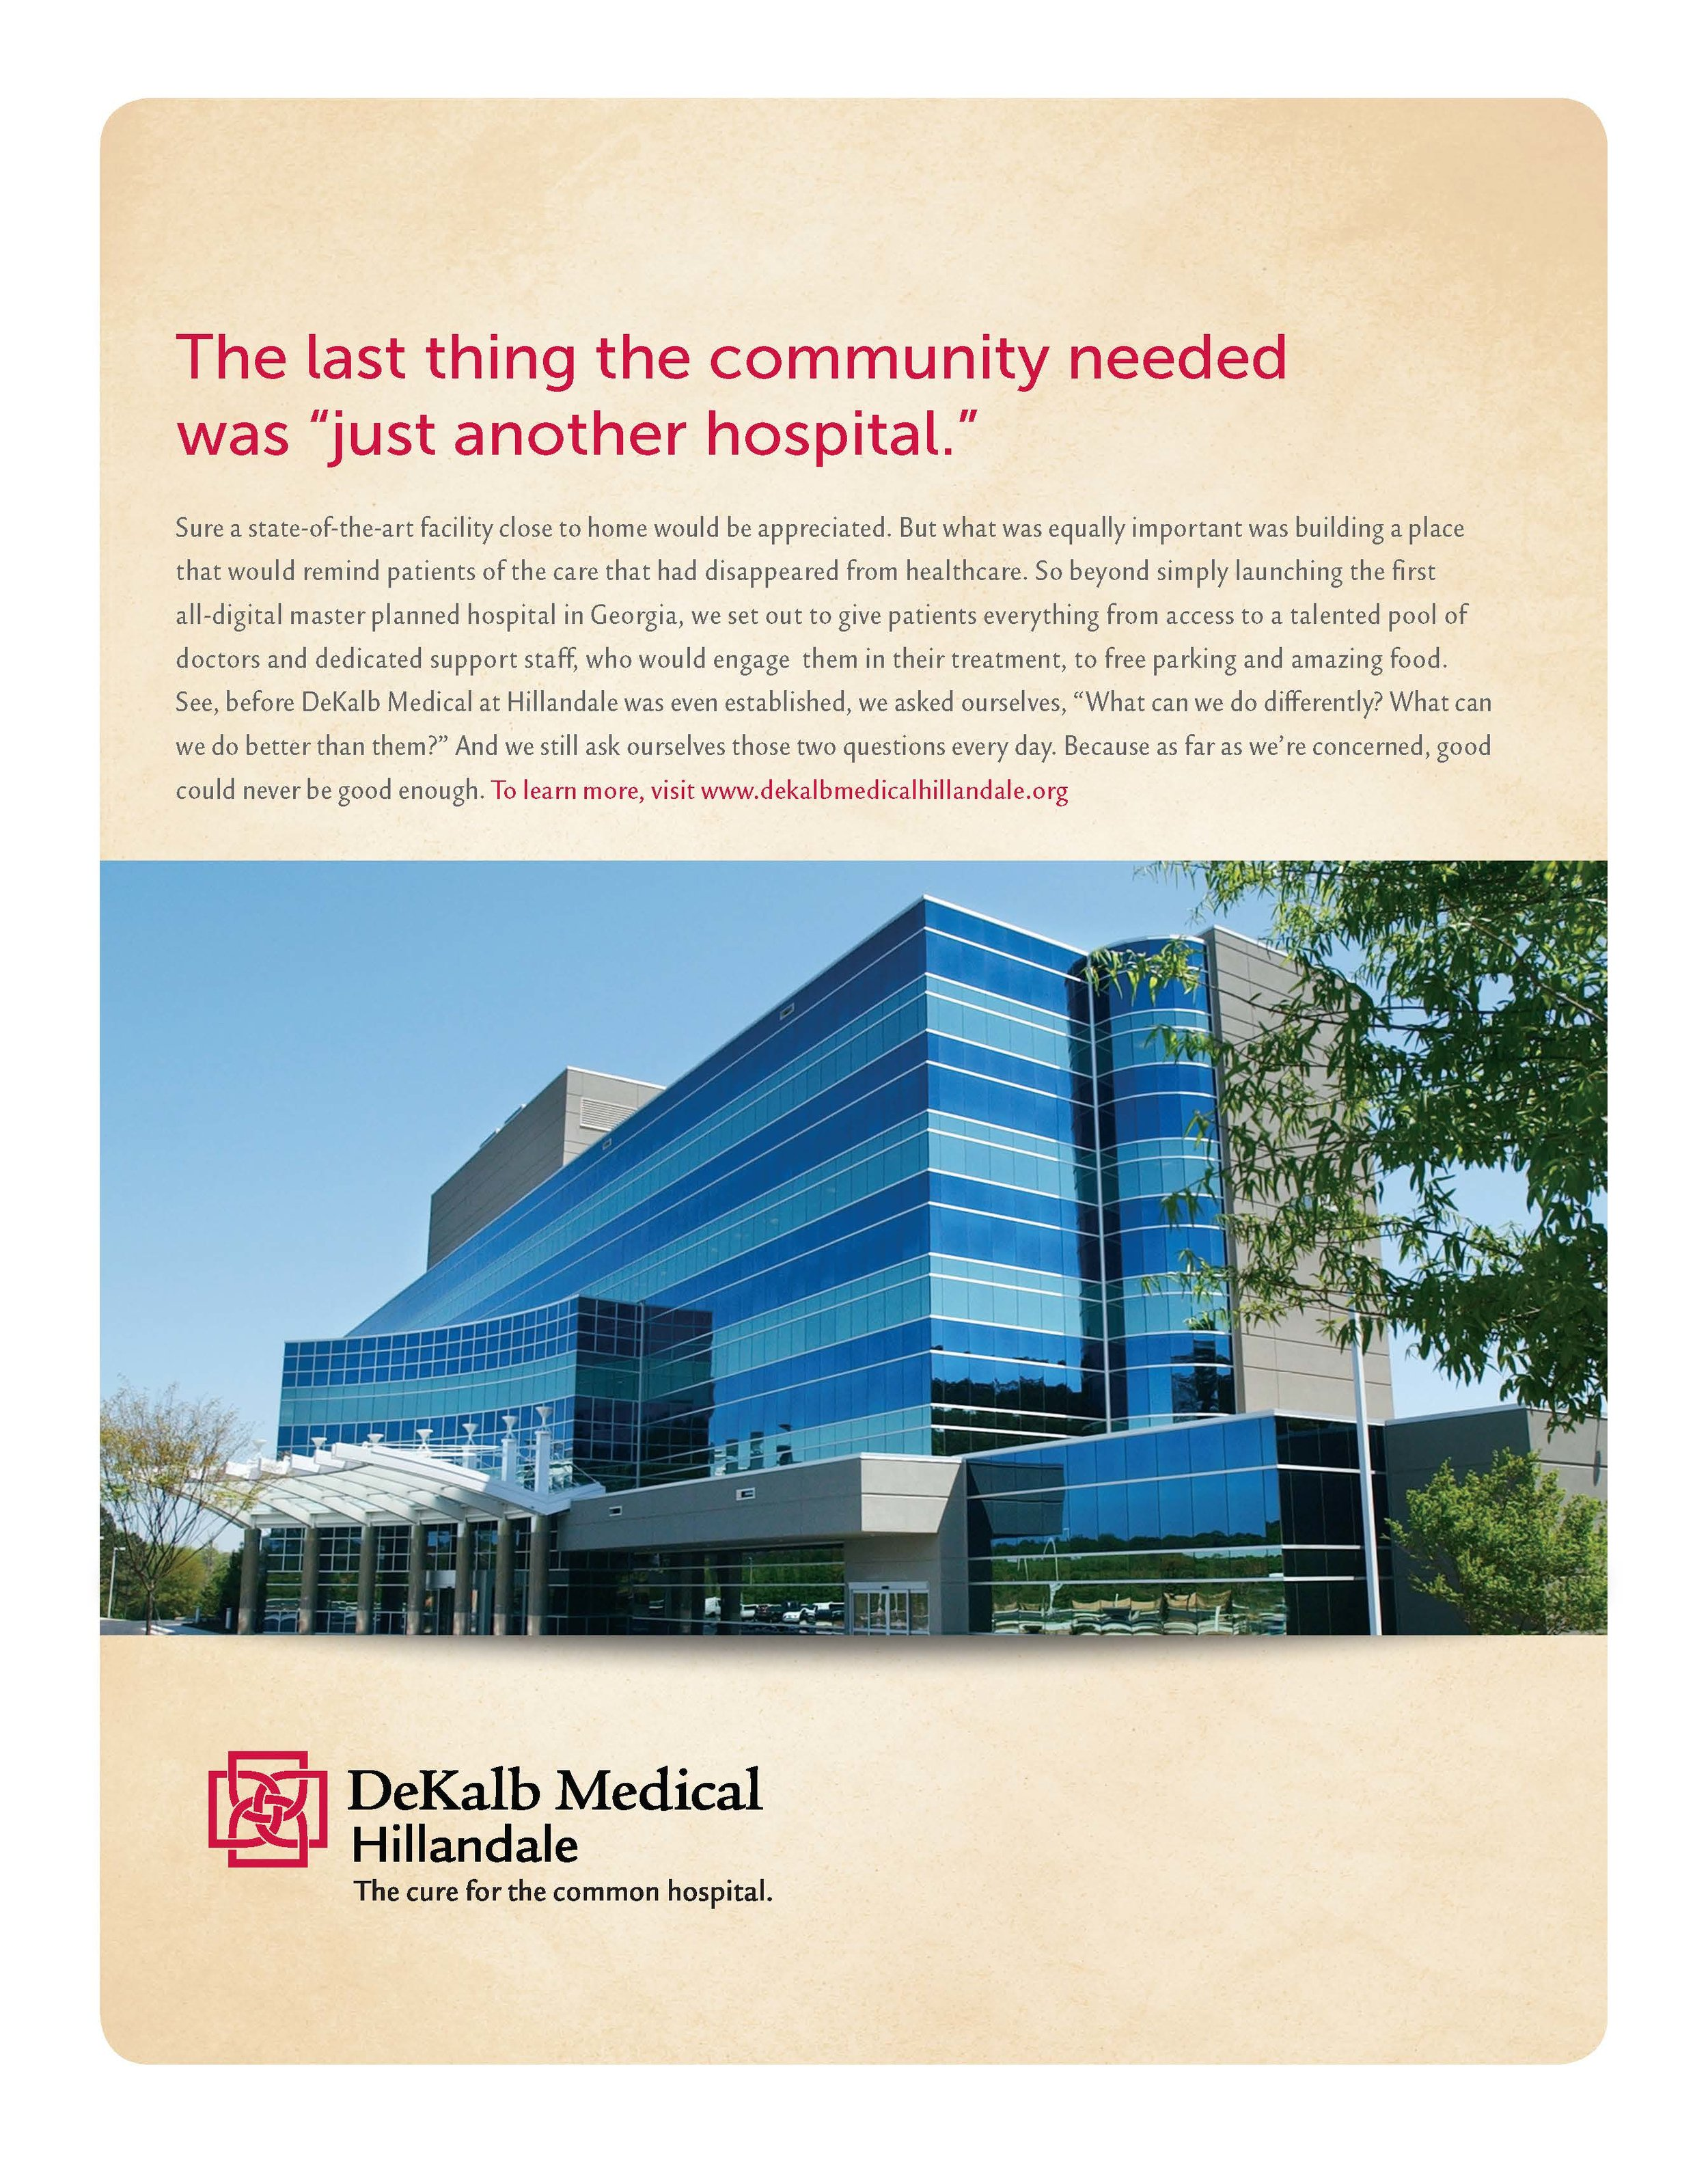 DeKalb-Medical_Hillandale_2 Print Ads_Page_2.jpg